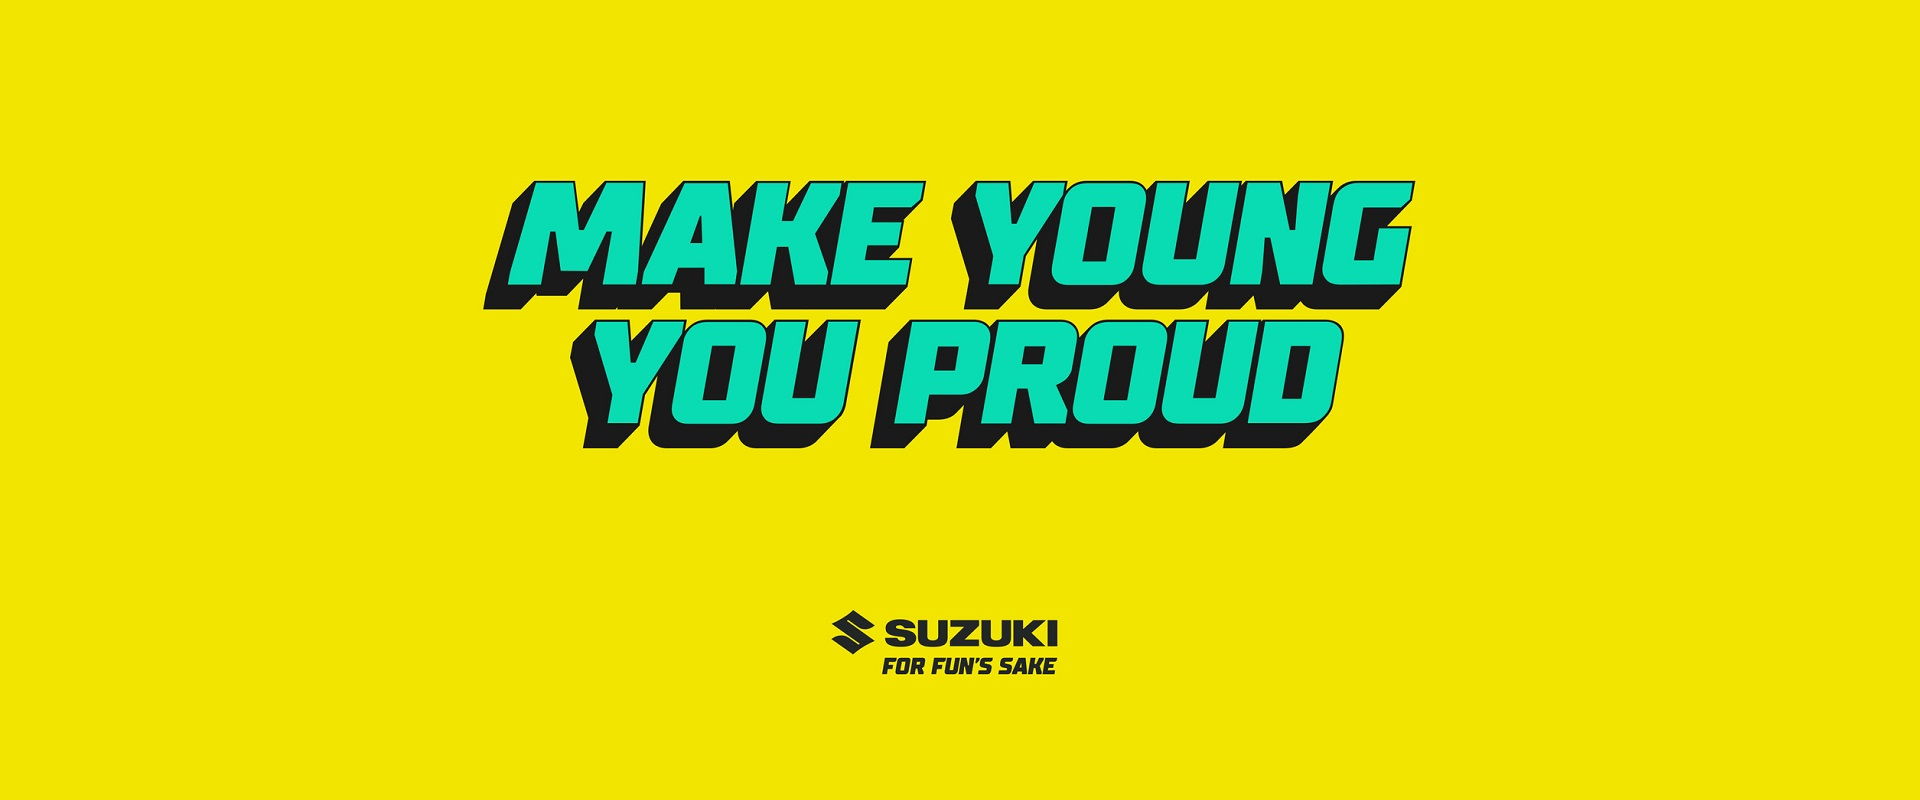 Make you young proud